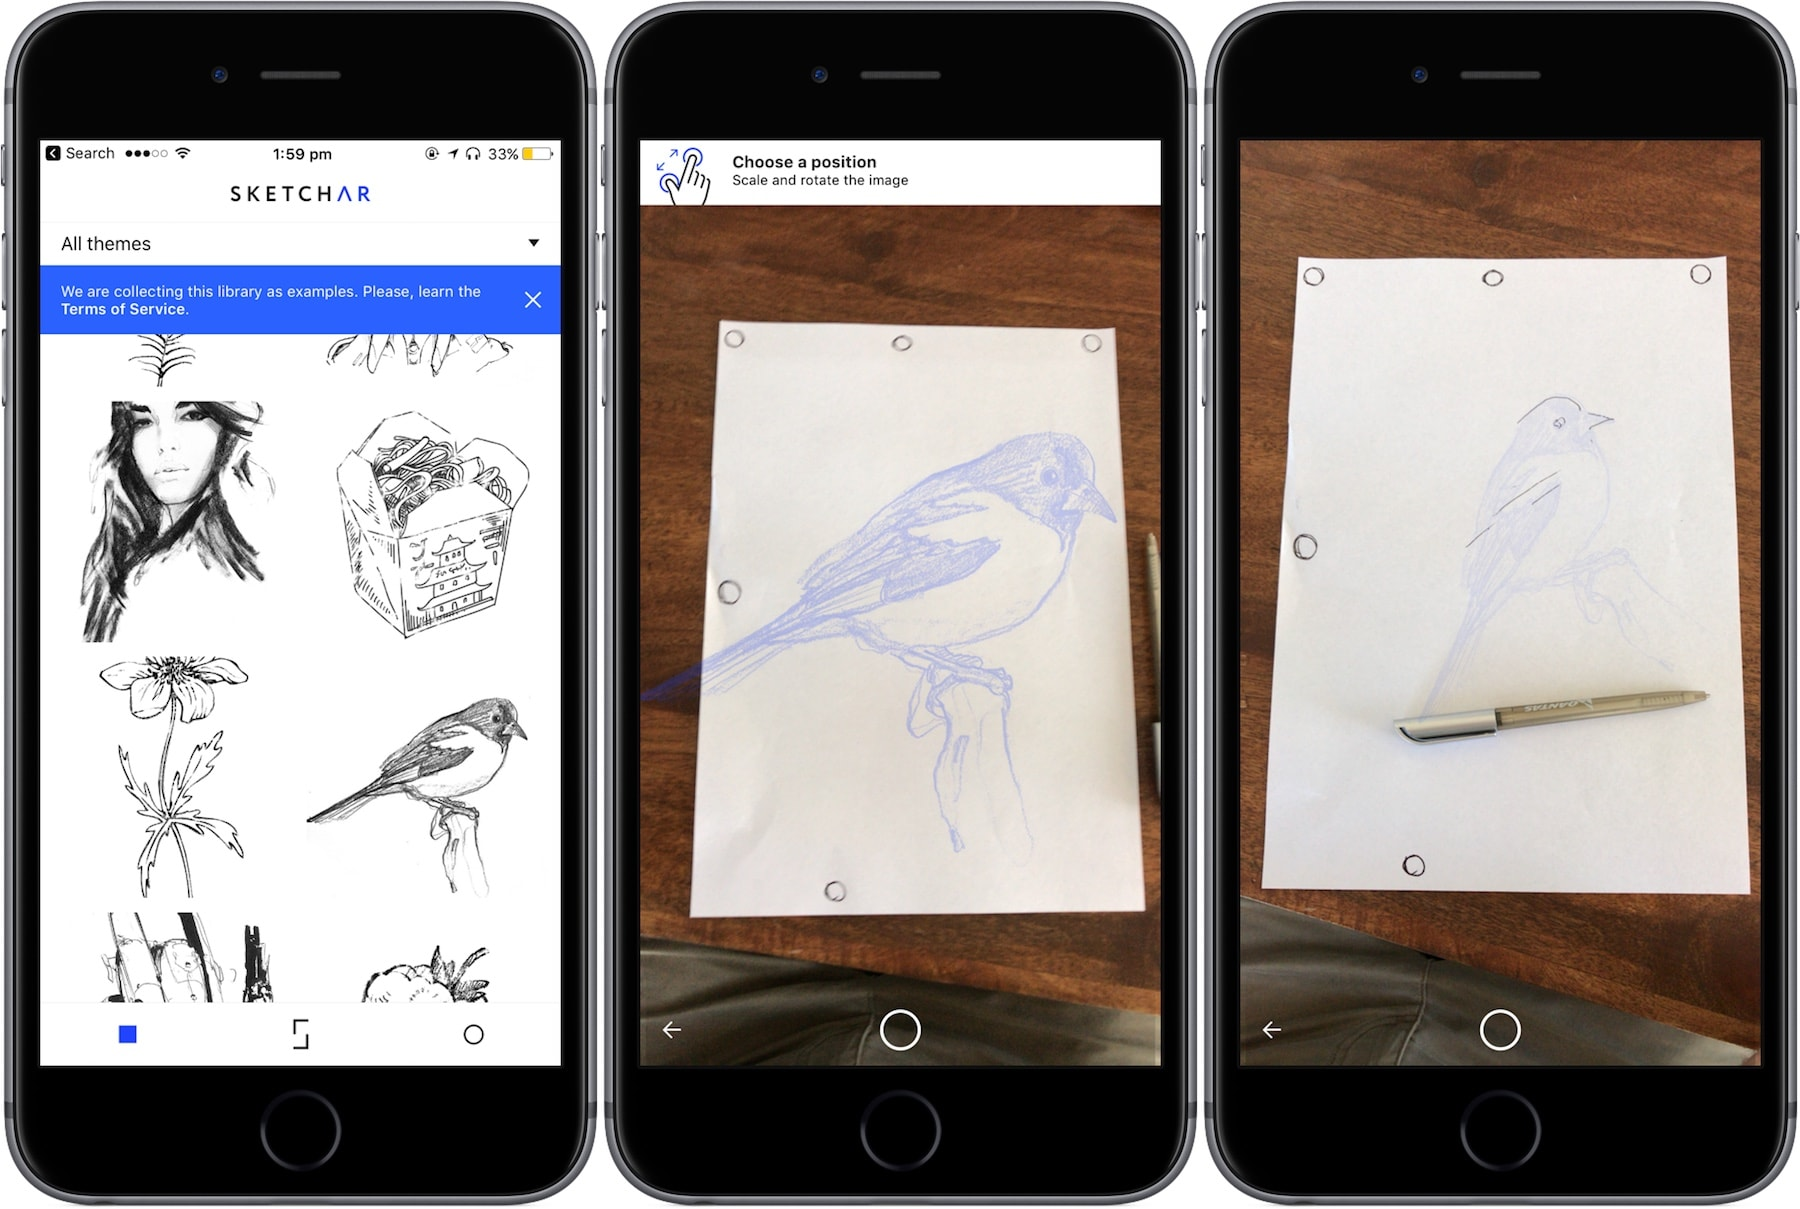 SketchAR-drawing sketches using augmented reality